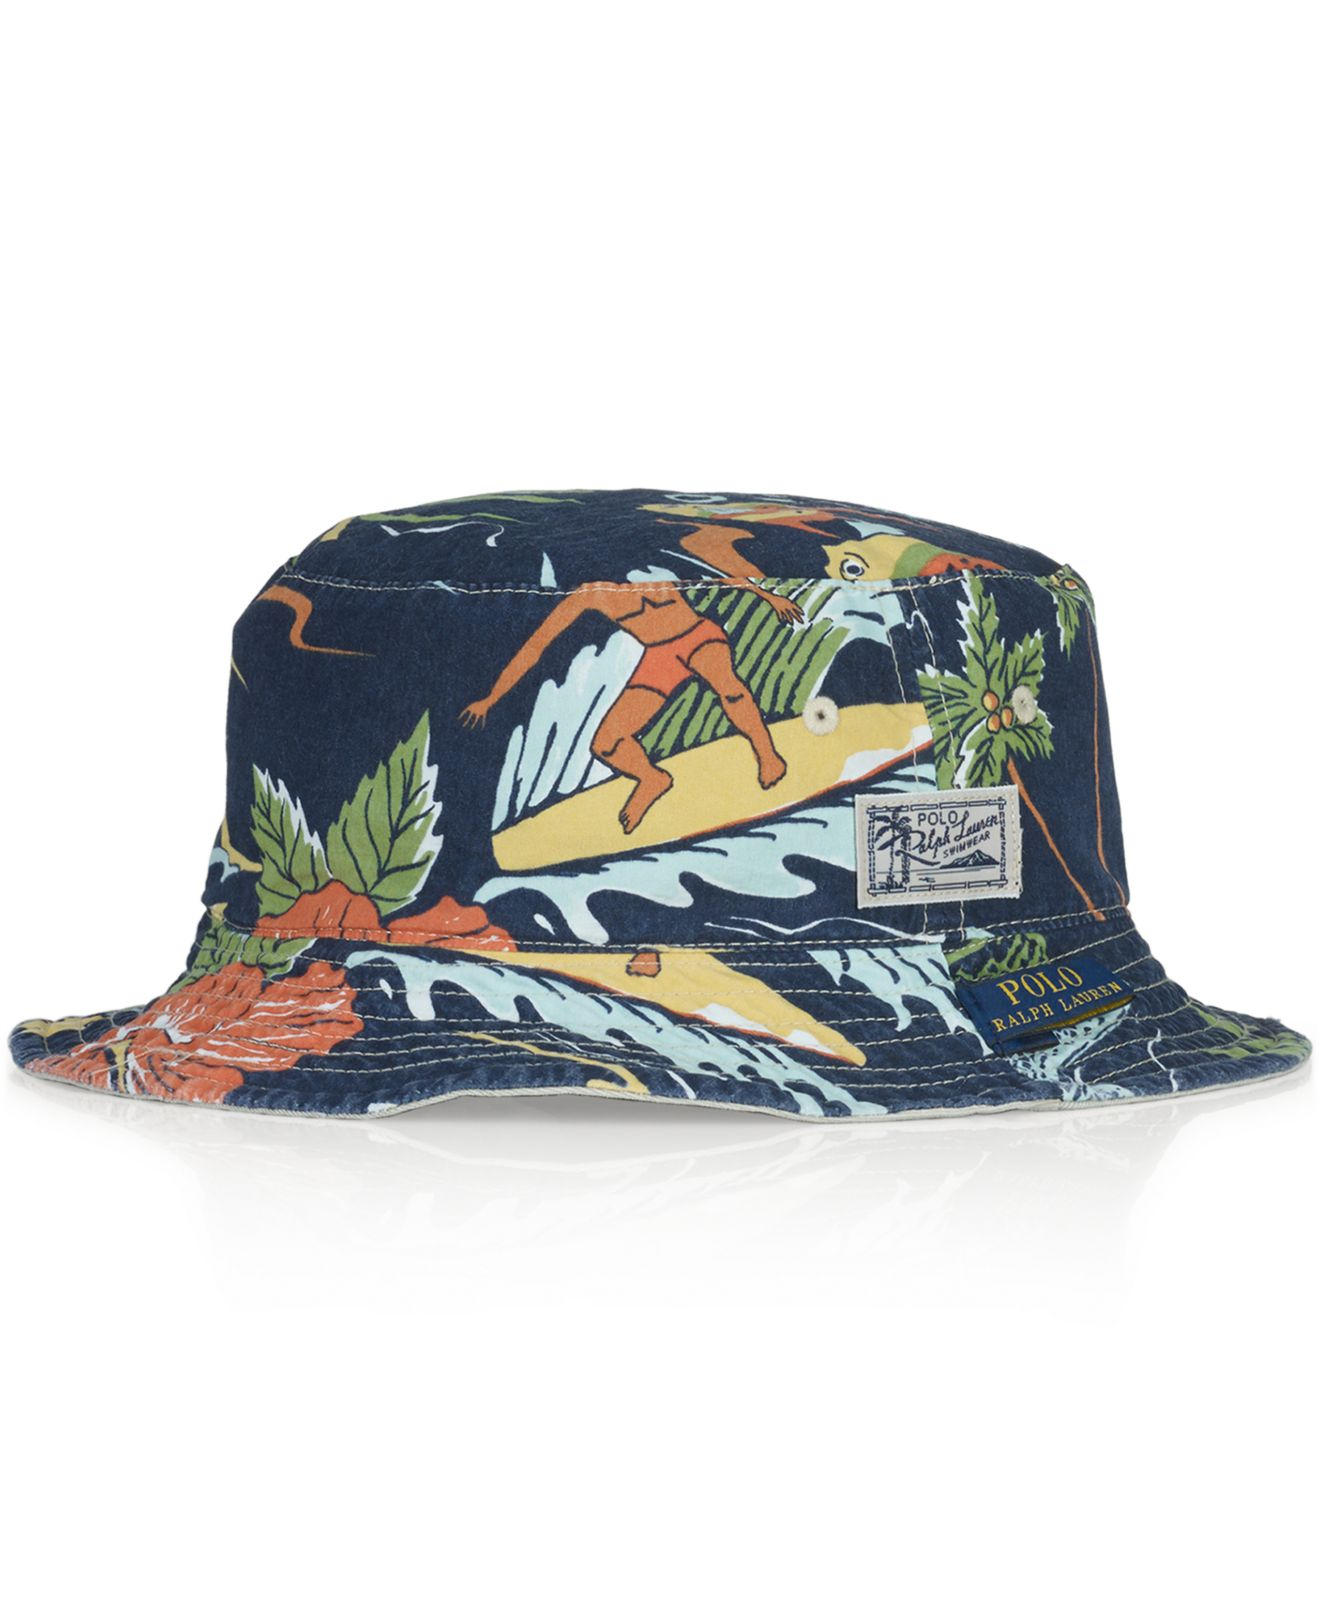 Lyst - Polo Ralph Lauren Reversible Tropical Bucket Hat for Men a88a4c8eb408